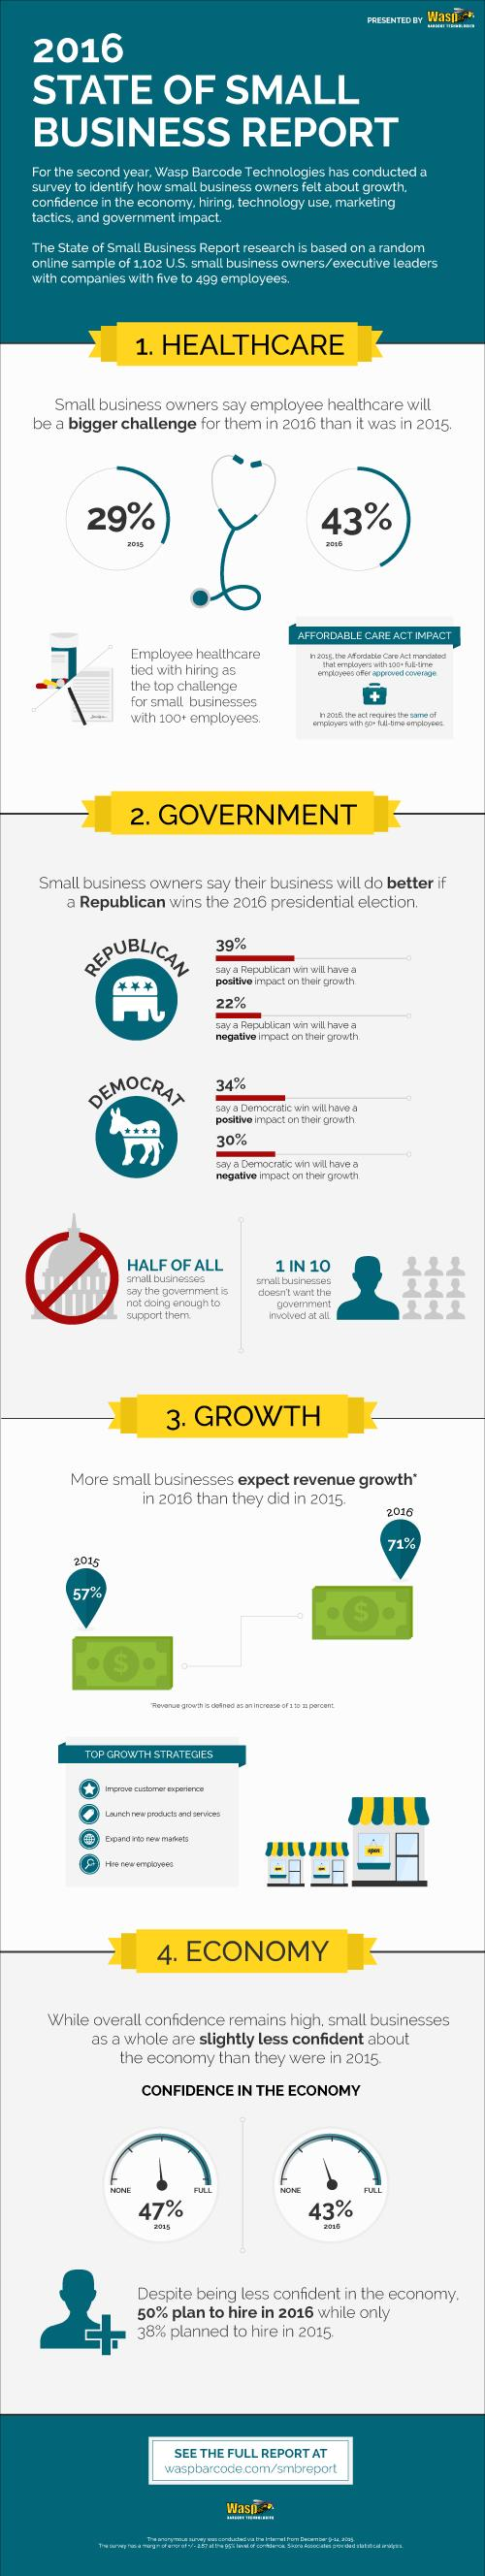 2016 State of Small Business Report